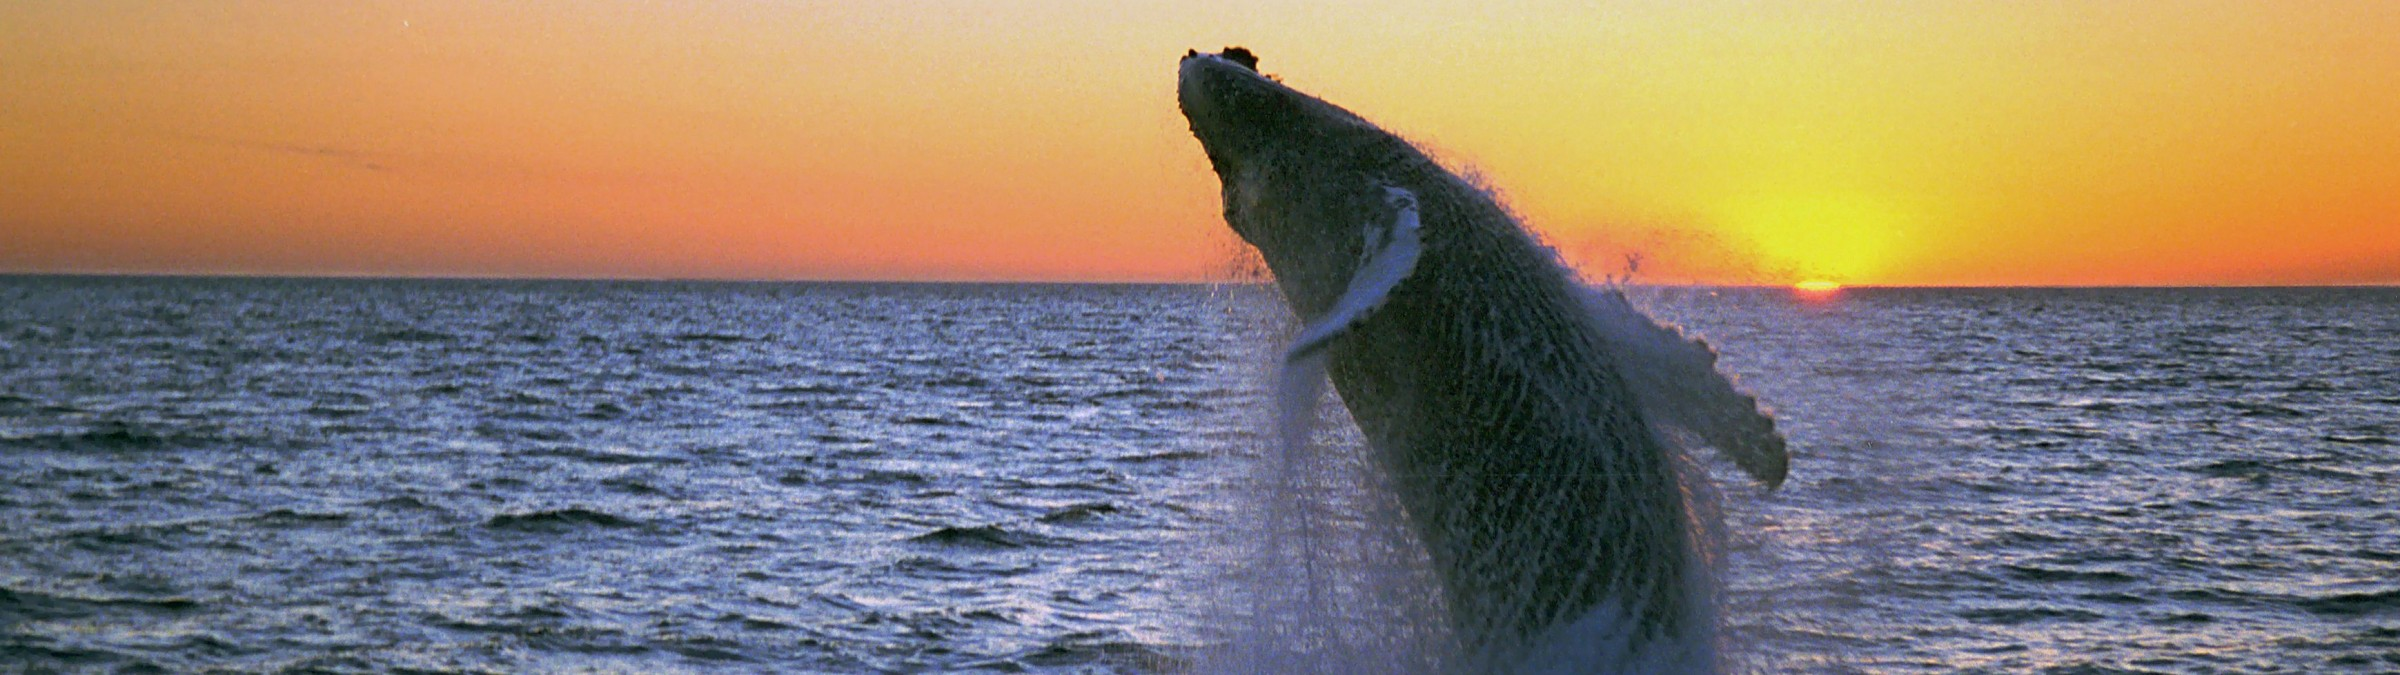 iceland_is-humpback-midnight-jump-fixed.jpg Credit Iceland Pro Travel